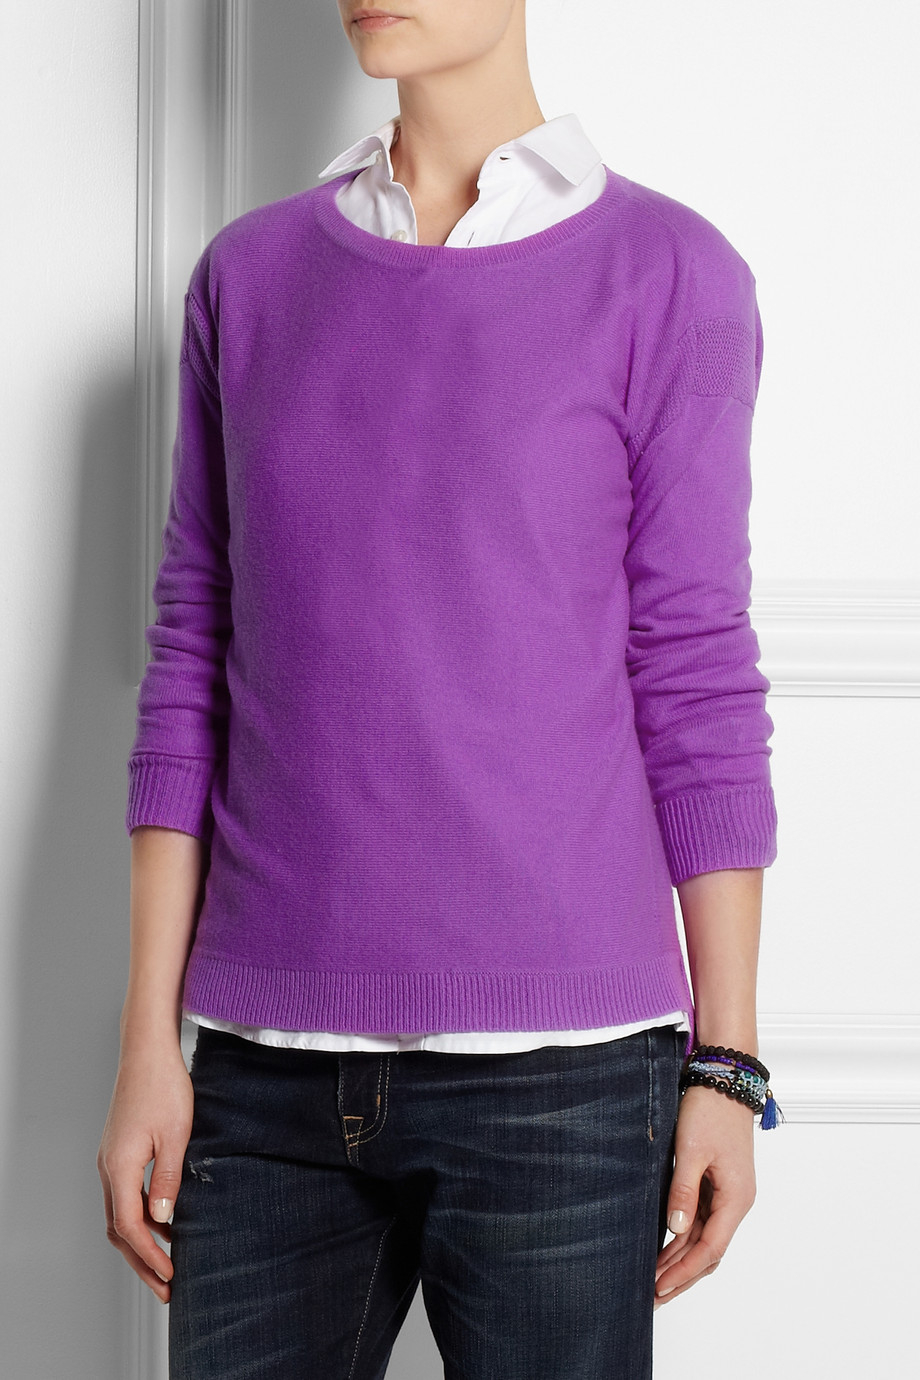 J.crew Cashmere Sweater in Purple | Lyst